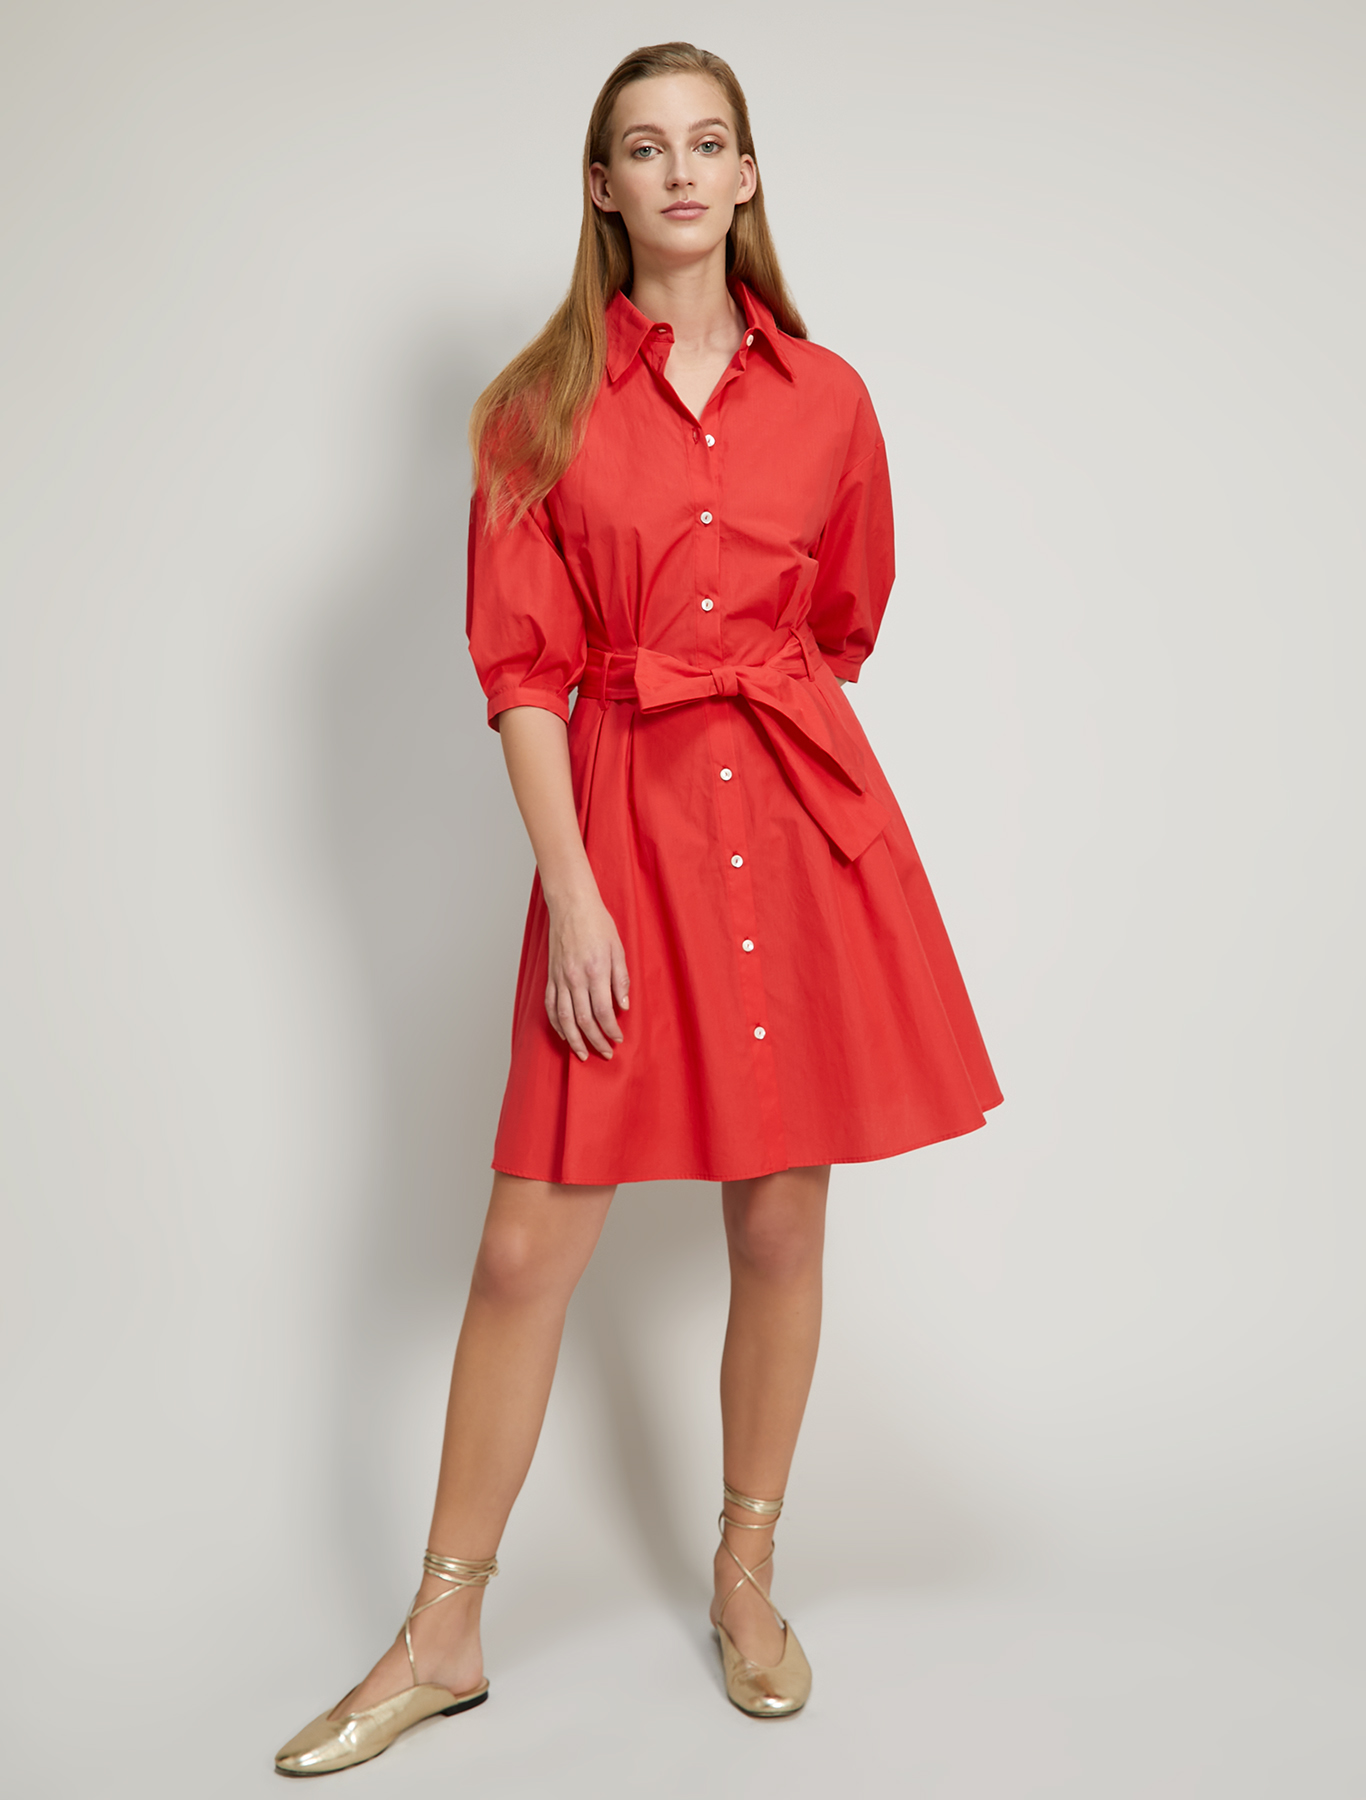 Poplin cotton shirt dress - coral - pennyblack